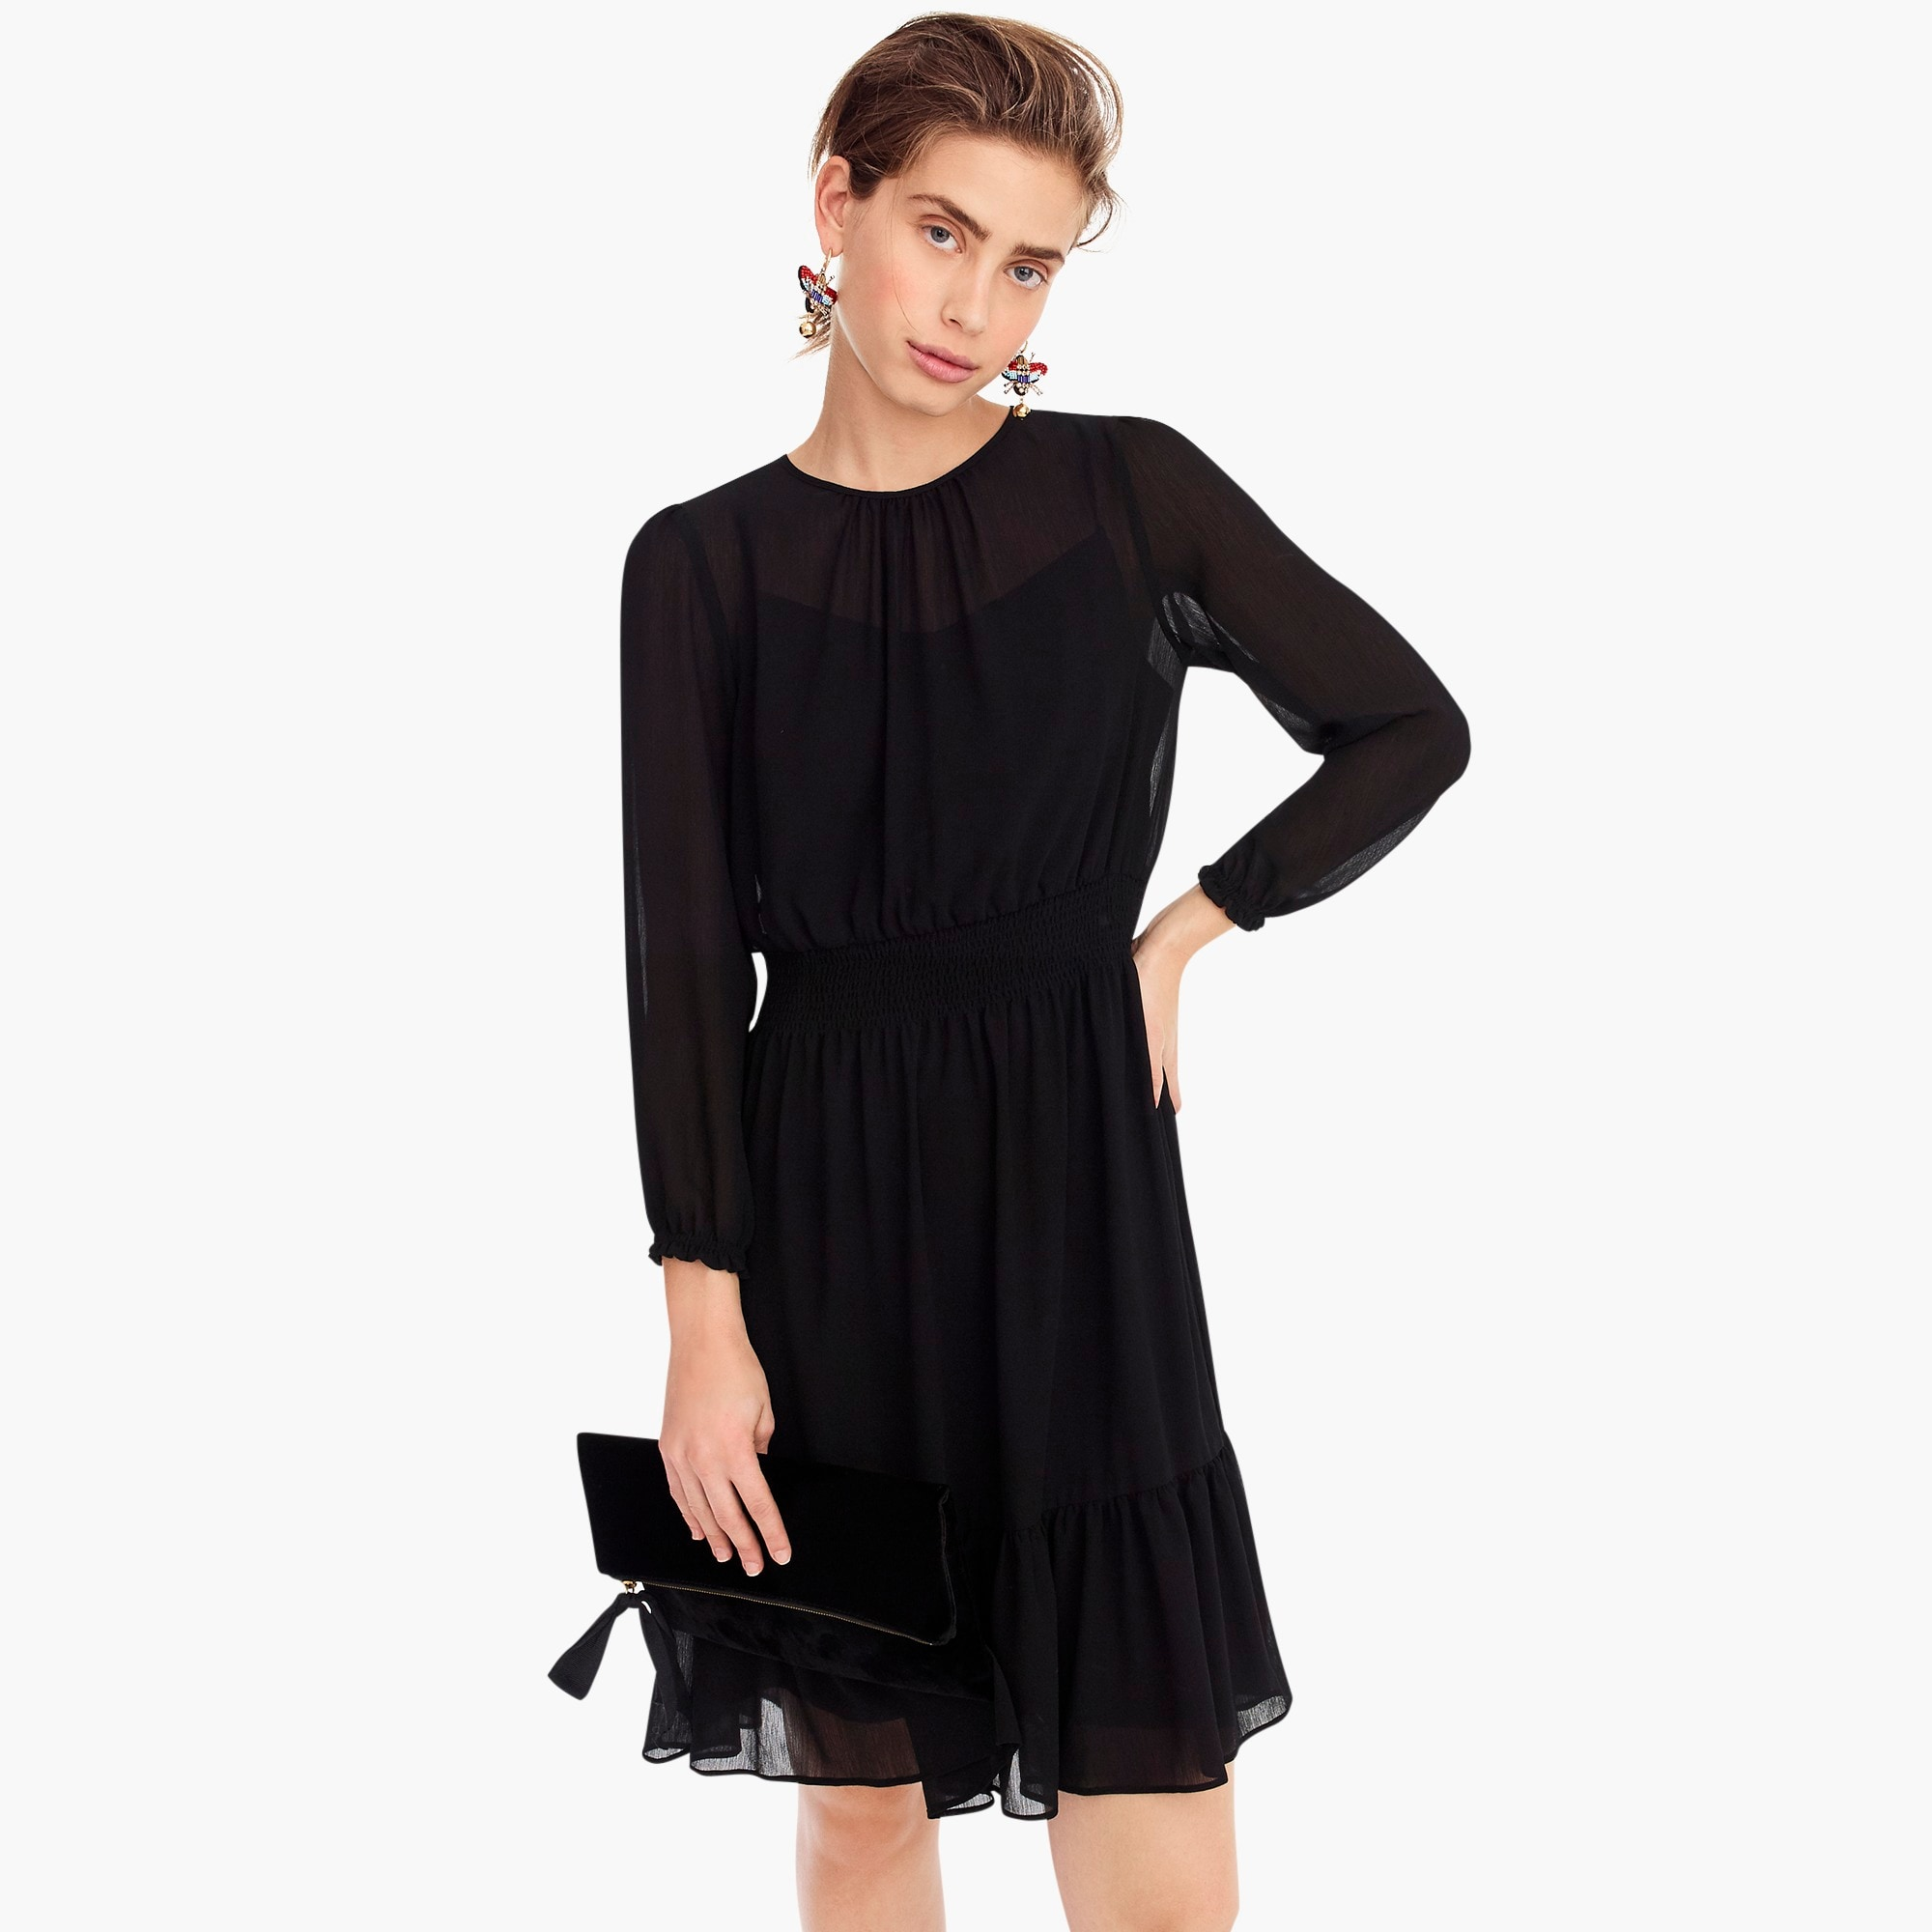 Cinched-waist dress in chiffon